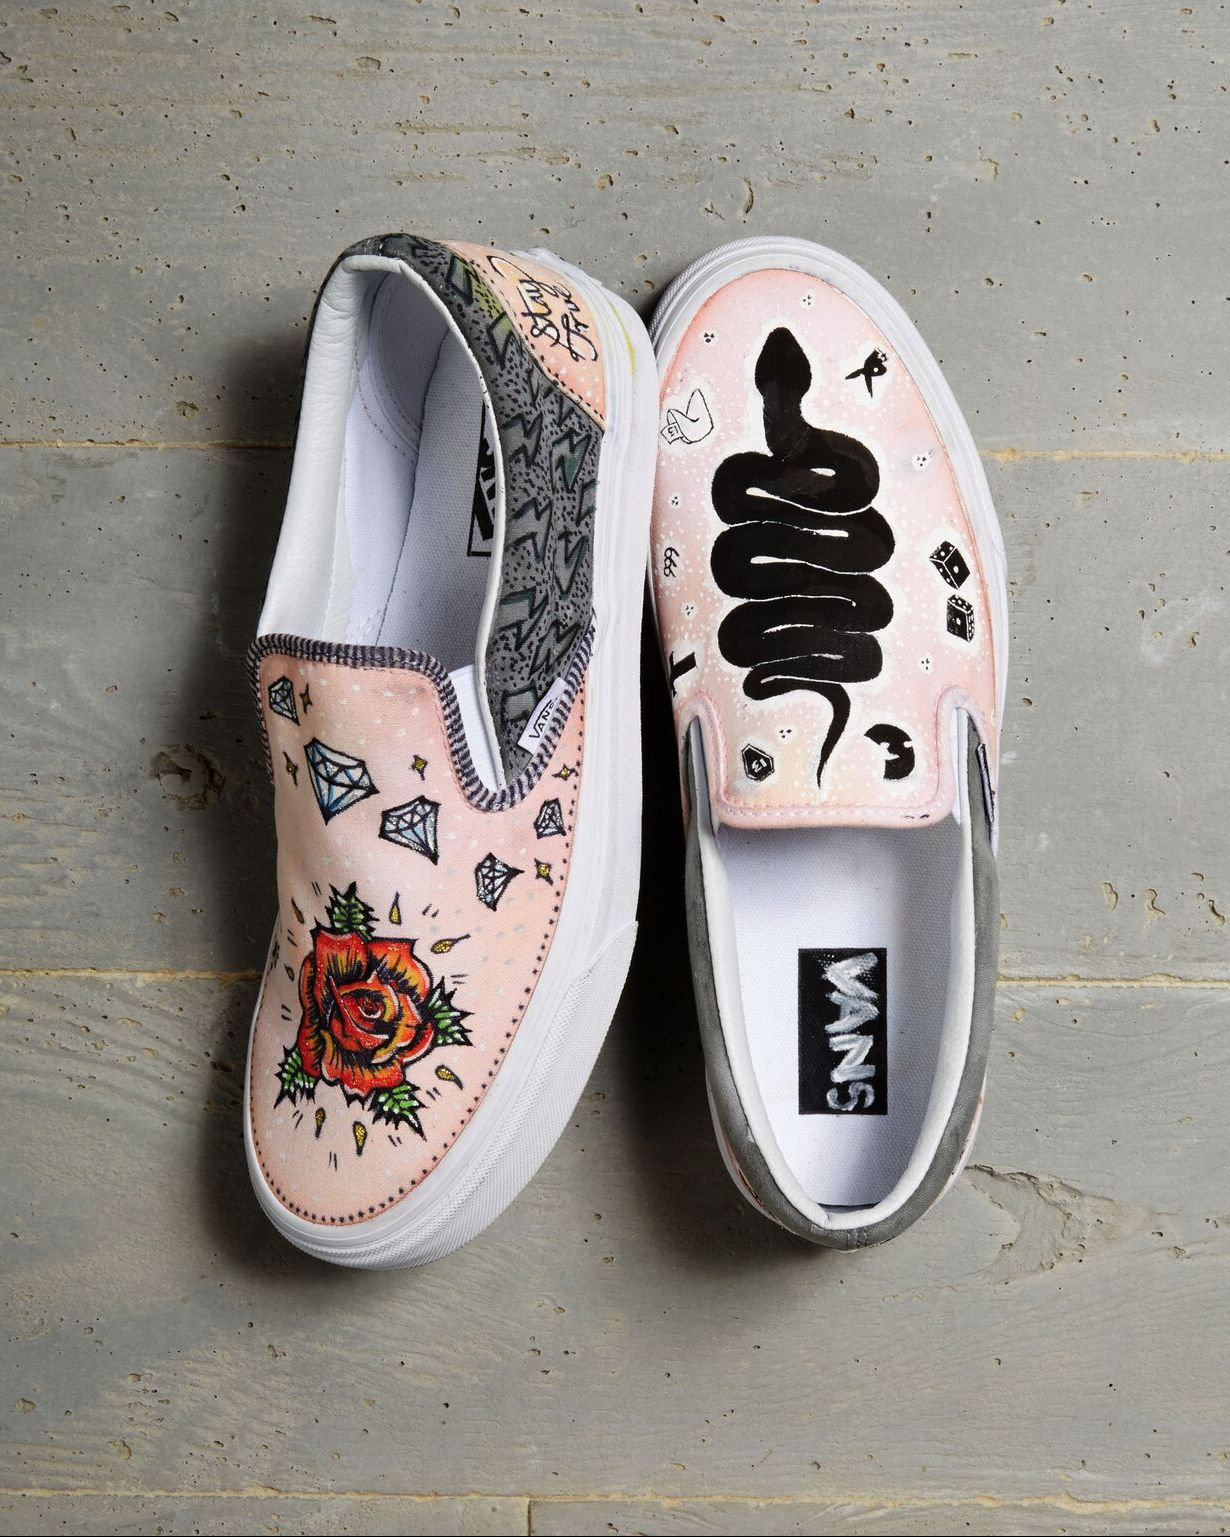 c98fe9d8bf Shoes by 2018 Vans Custom Culture ambassador